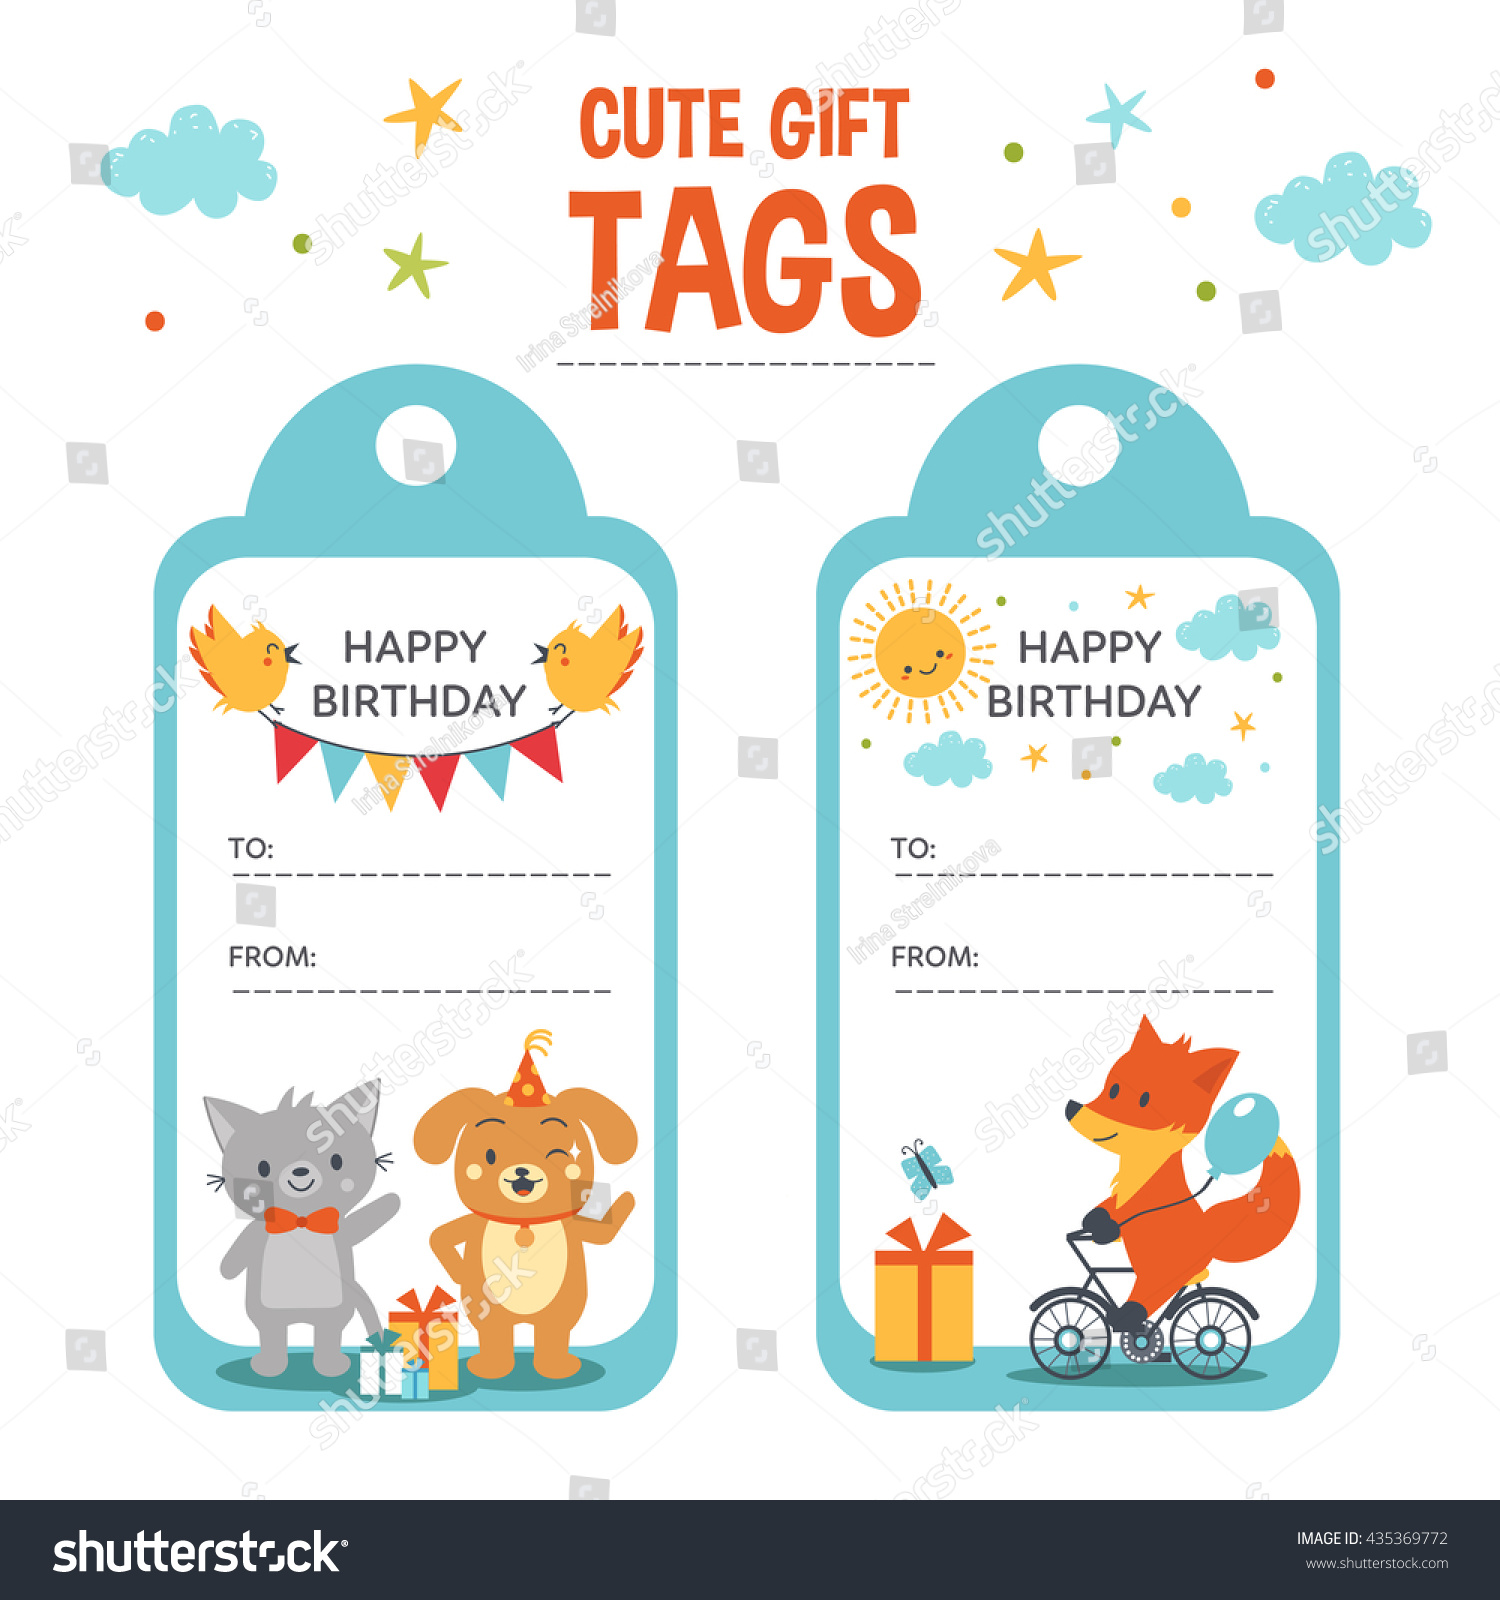 birthday gift tags ; stock-photo-cute-gift-tags-templates-birthday-gift-tags-with-text-place-and-cute-animals-435369772